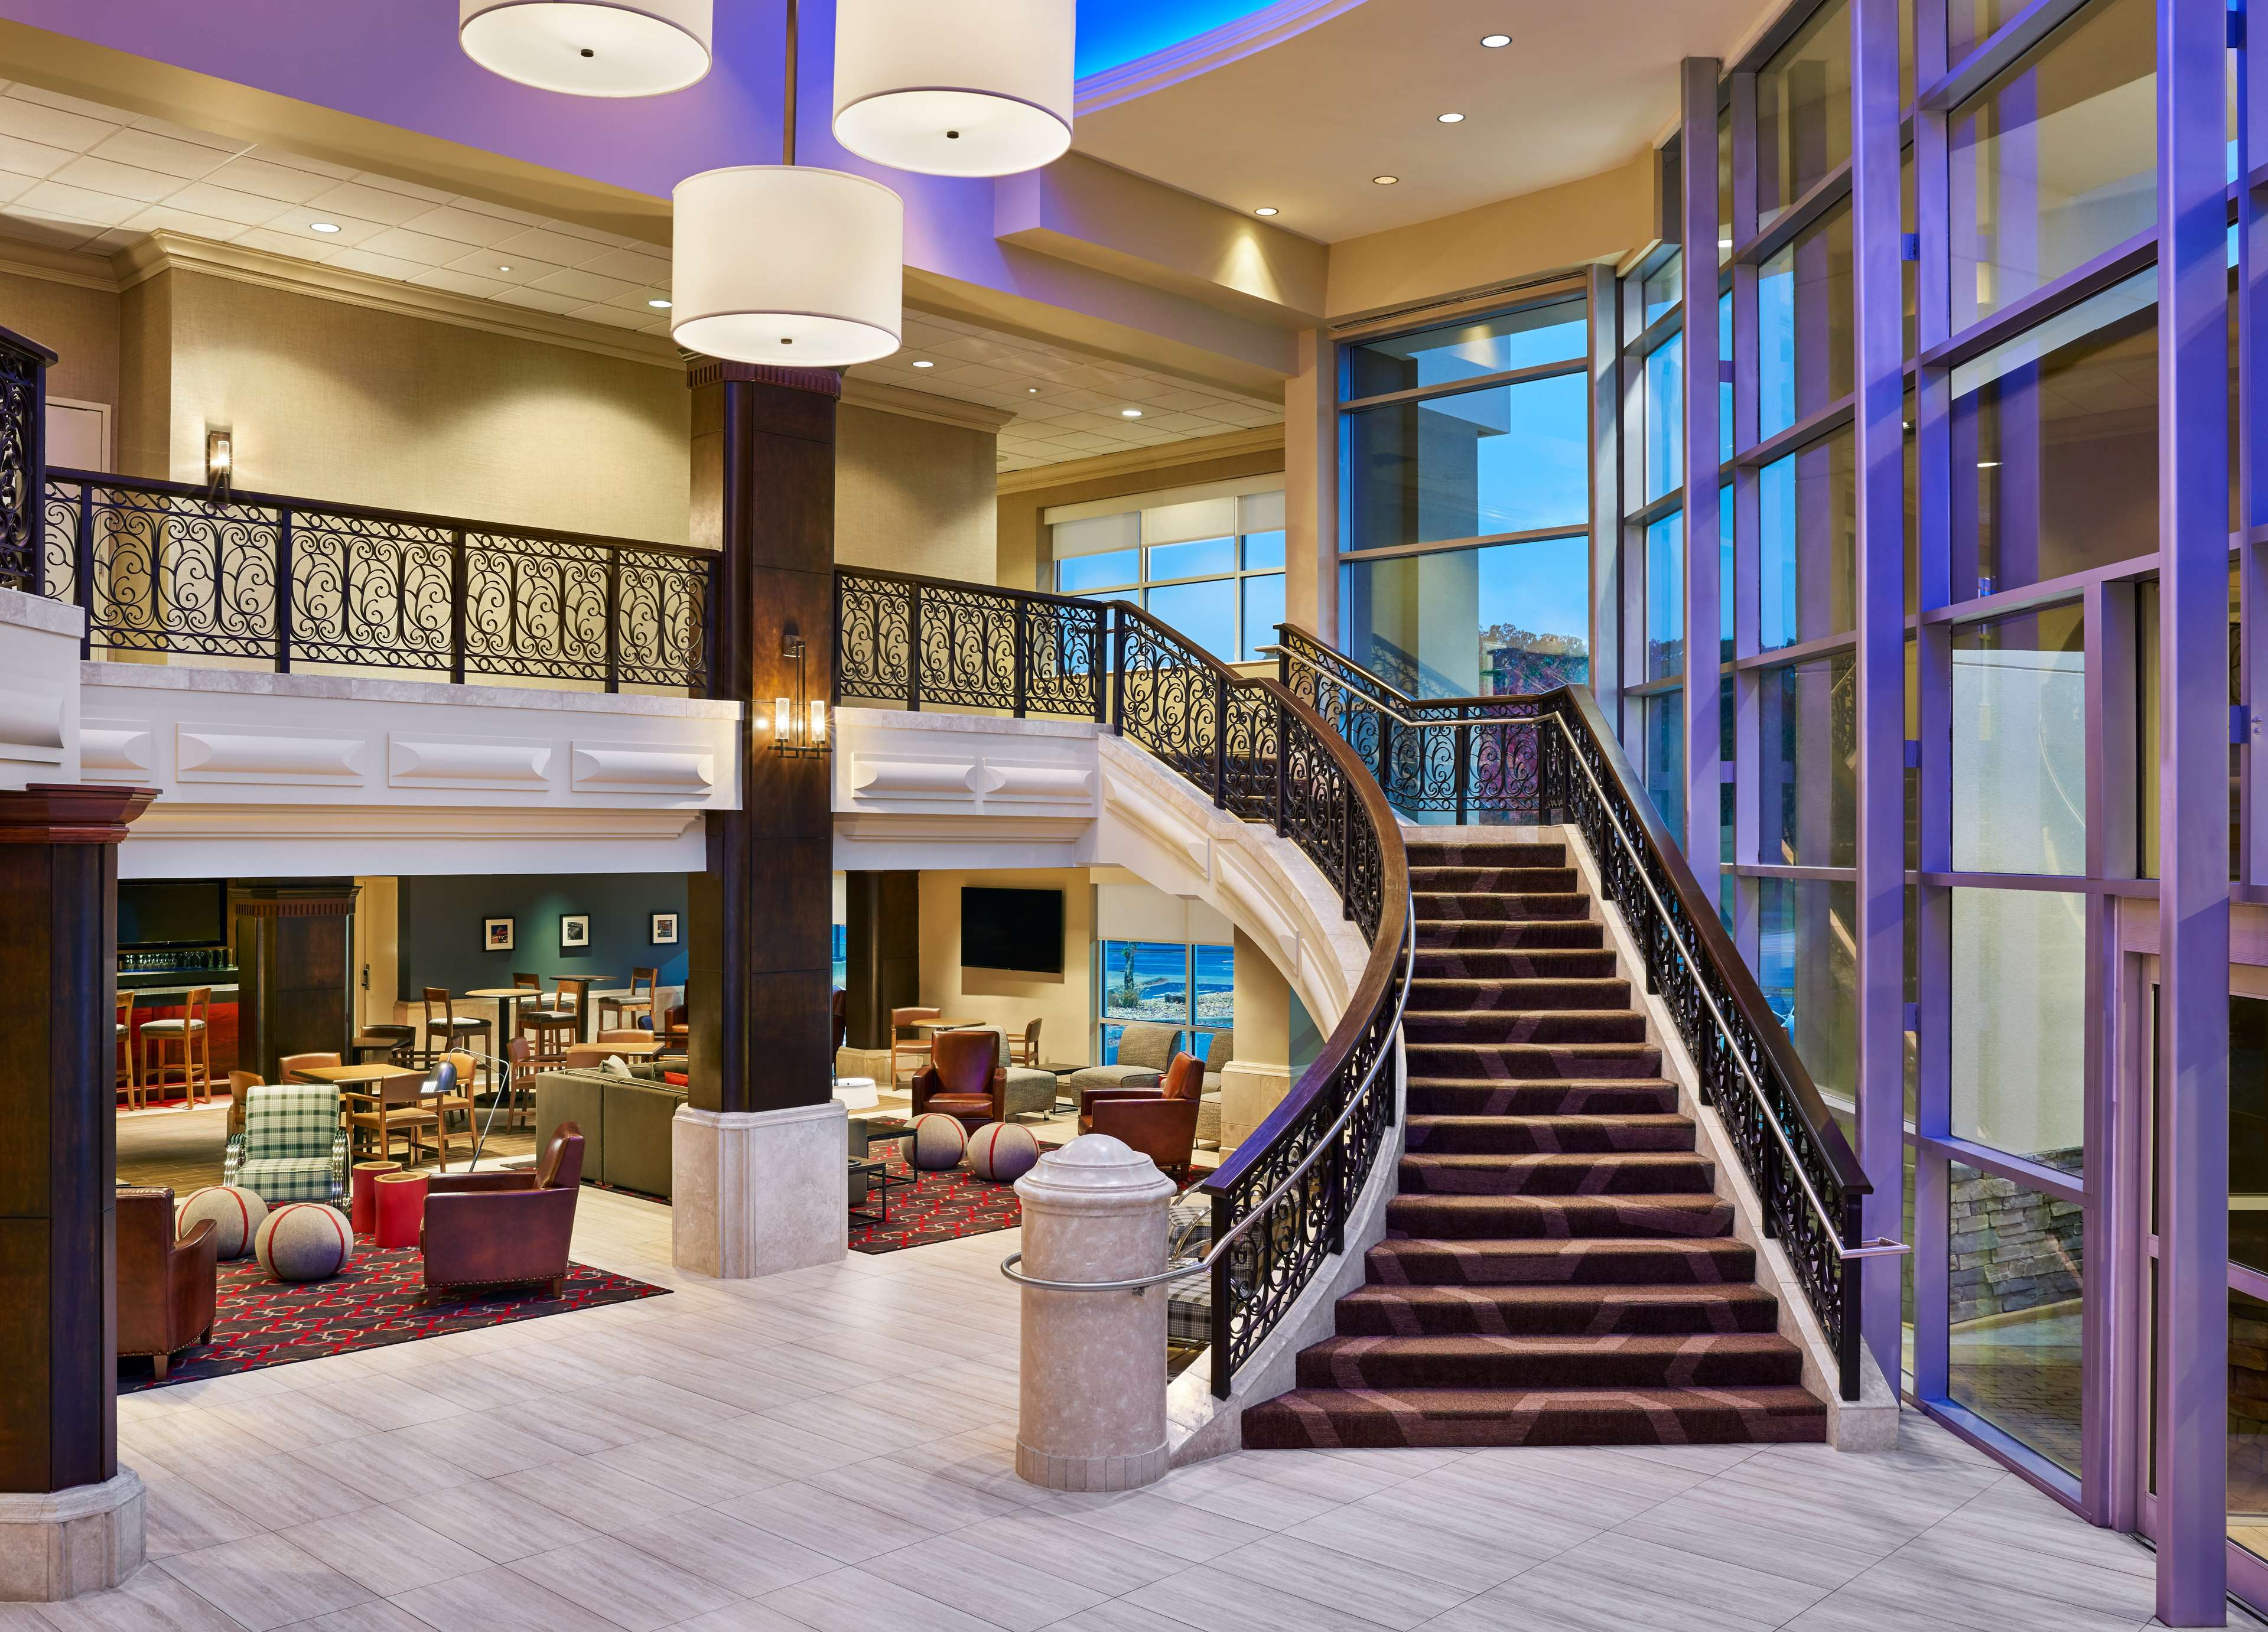 four points by sheraton little rock midtown coupons near me in little rock 8coupons. Black Bedroom Furniture Sets. Home Design Ideas